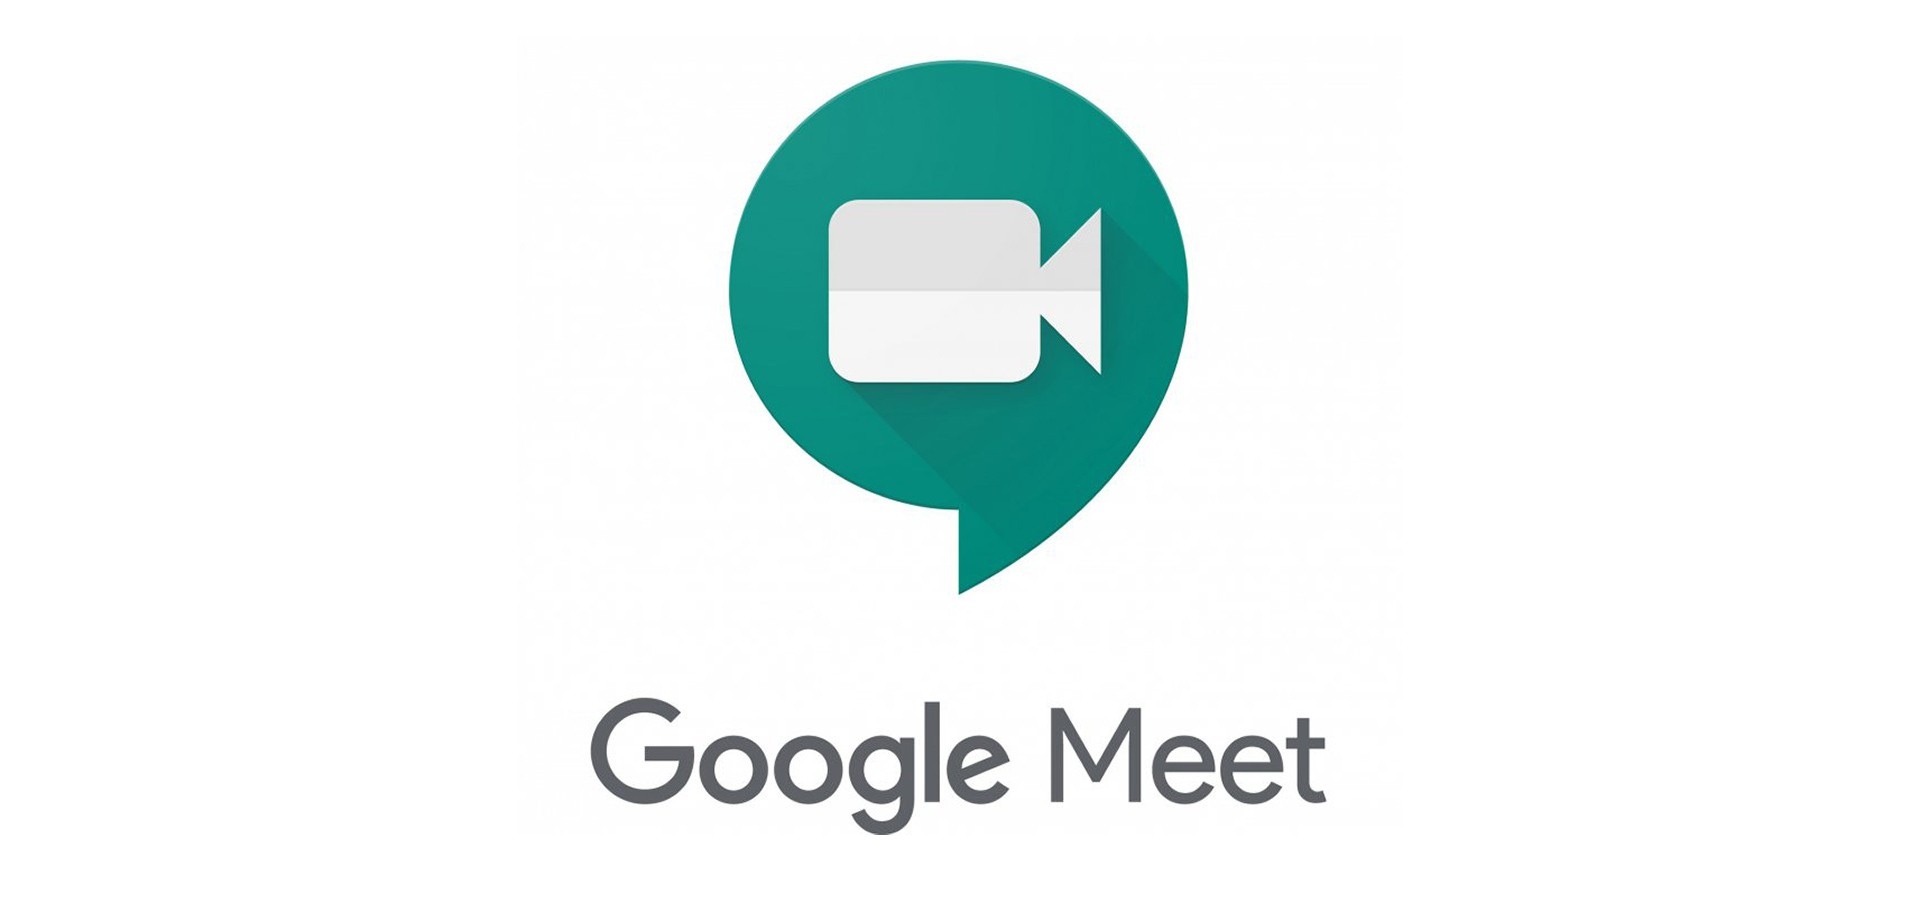 Google Meet Android App